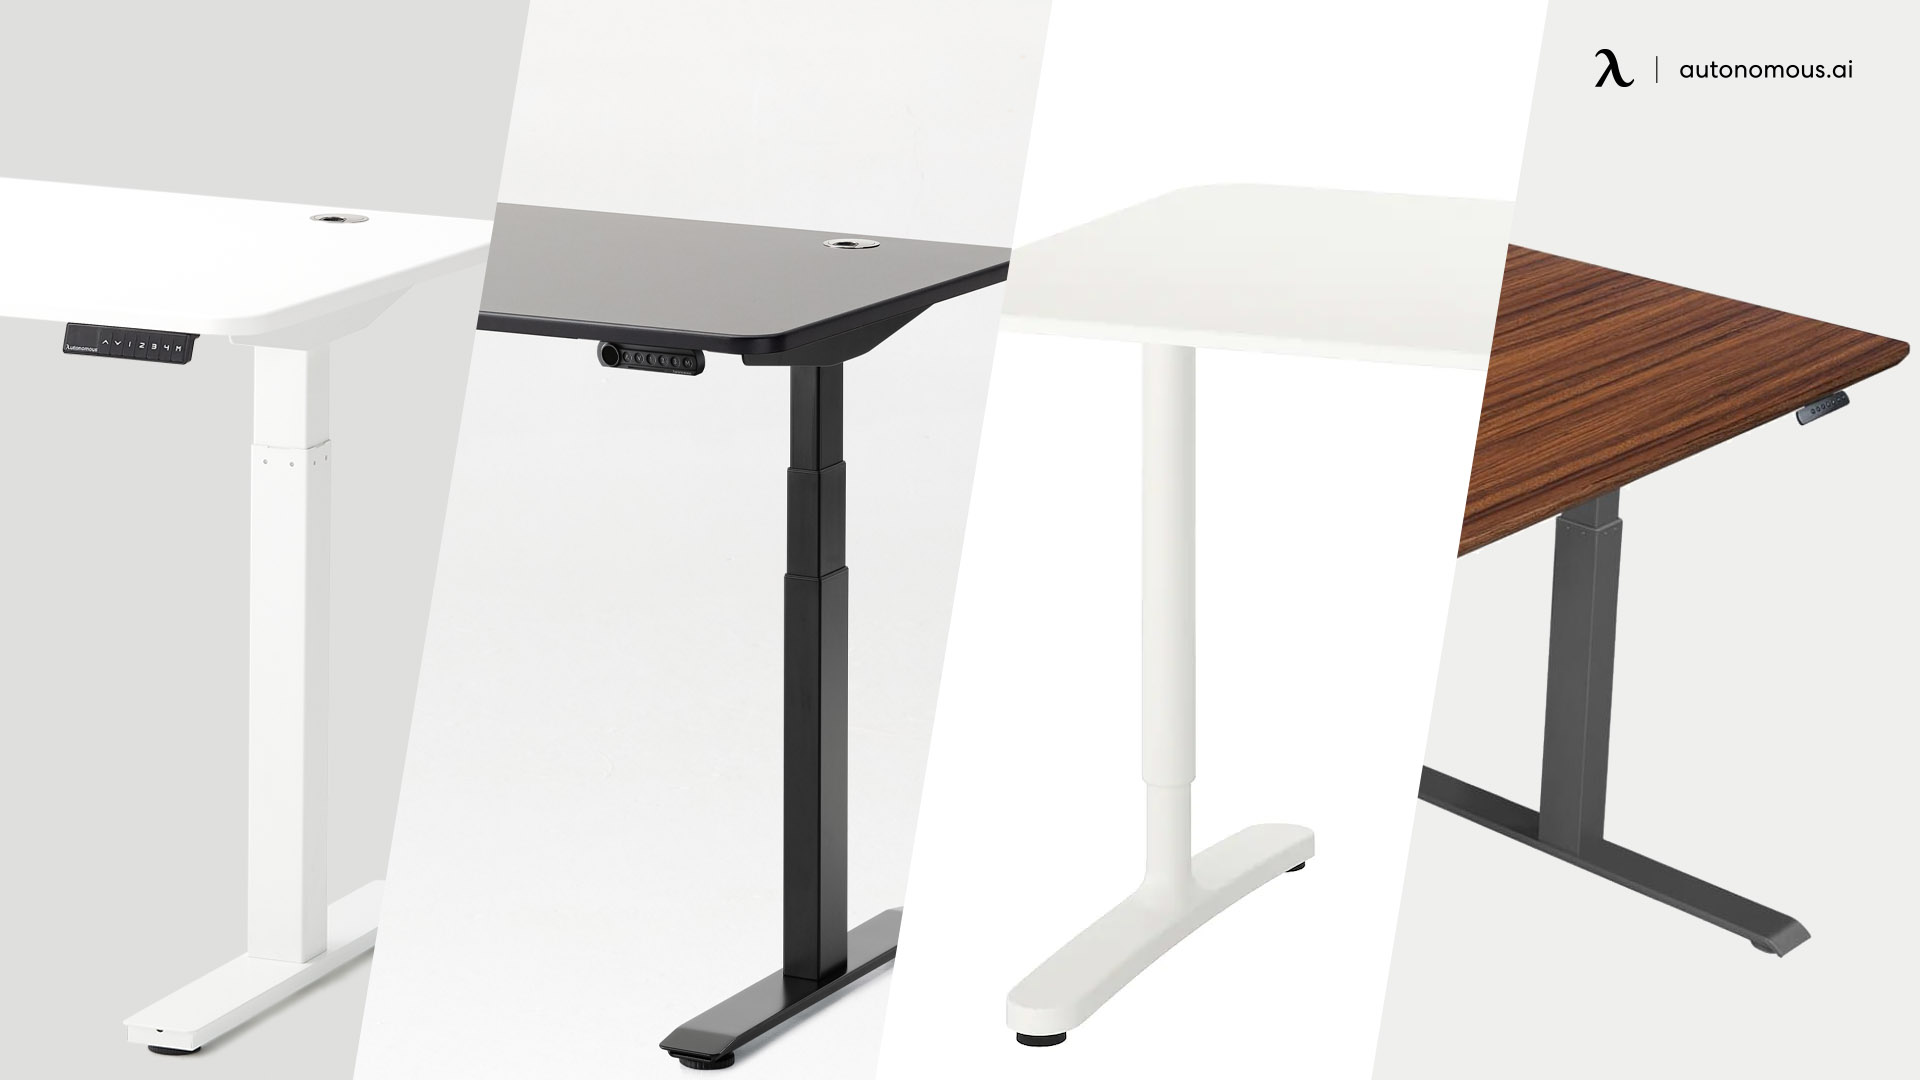 Compare SmartDesk 4 with others